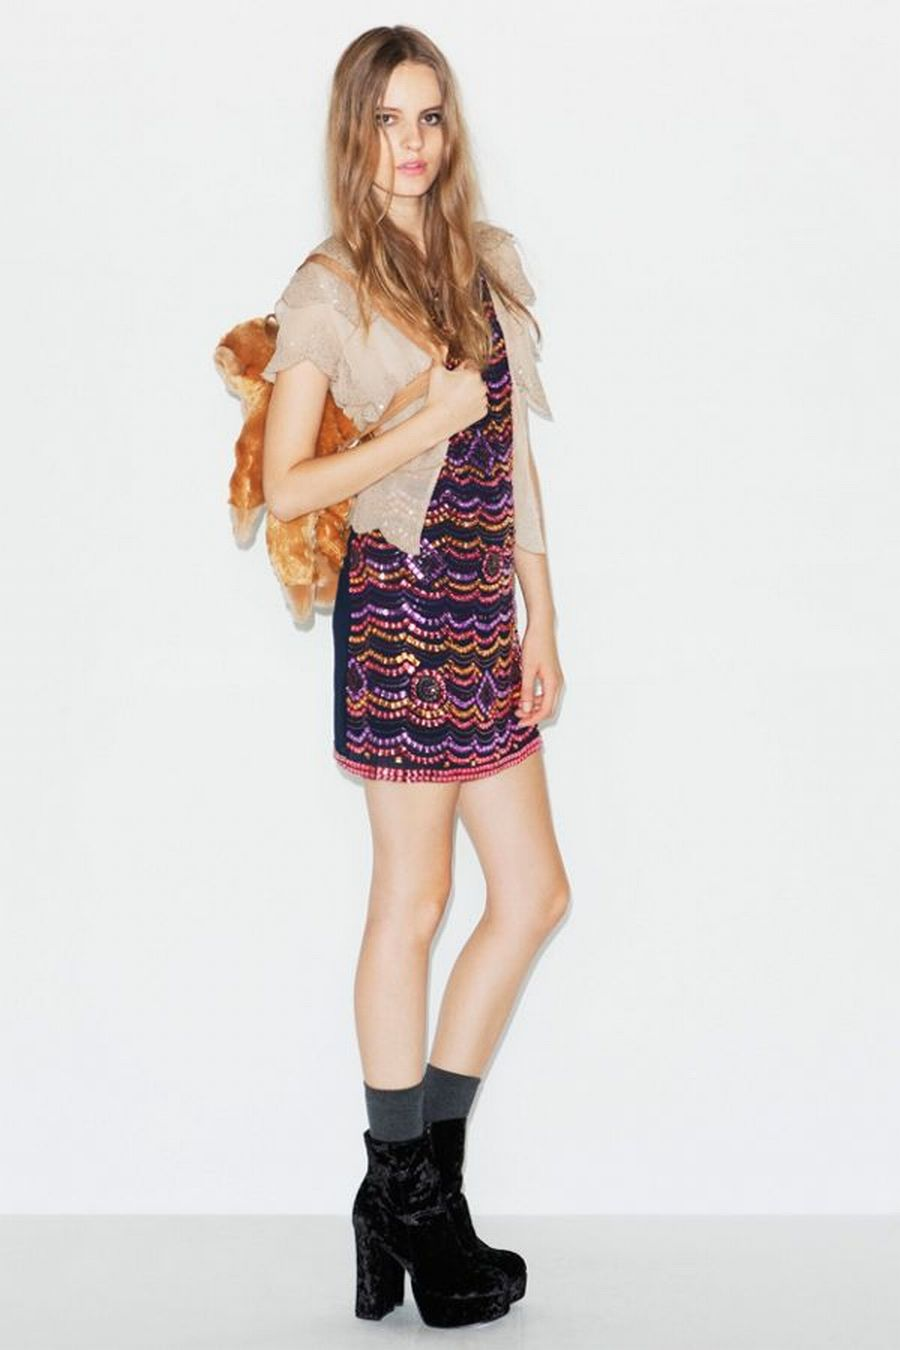 Urban-Outfitters-Cooperative-Fireworks-Shift-Dress-Stones-NWT-Holiday-Wedding_13479B.jpg